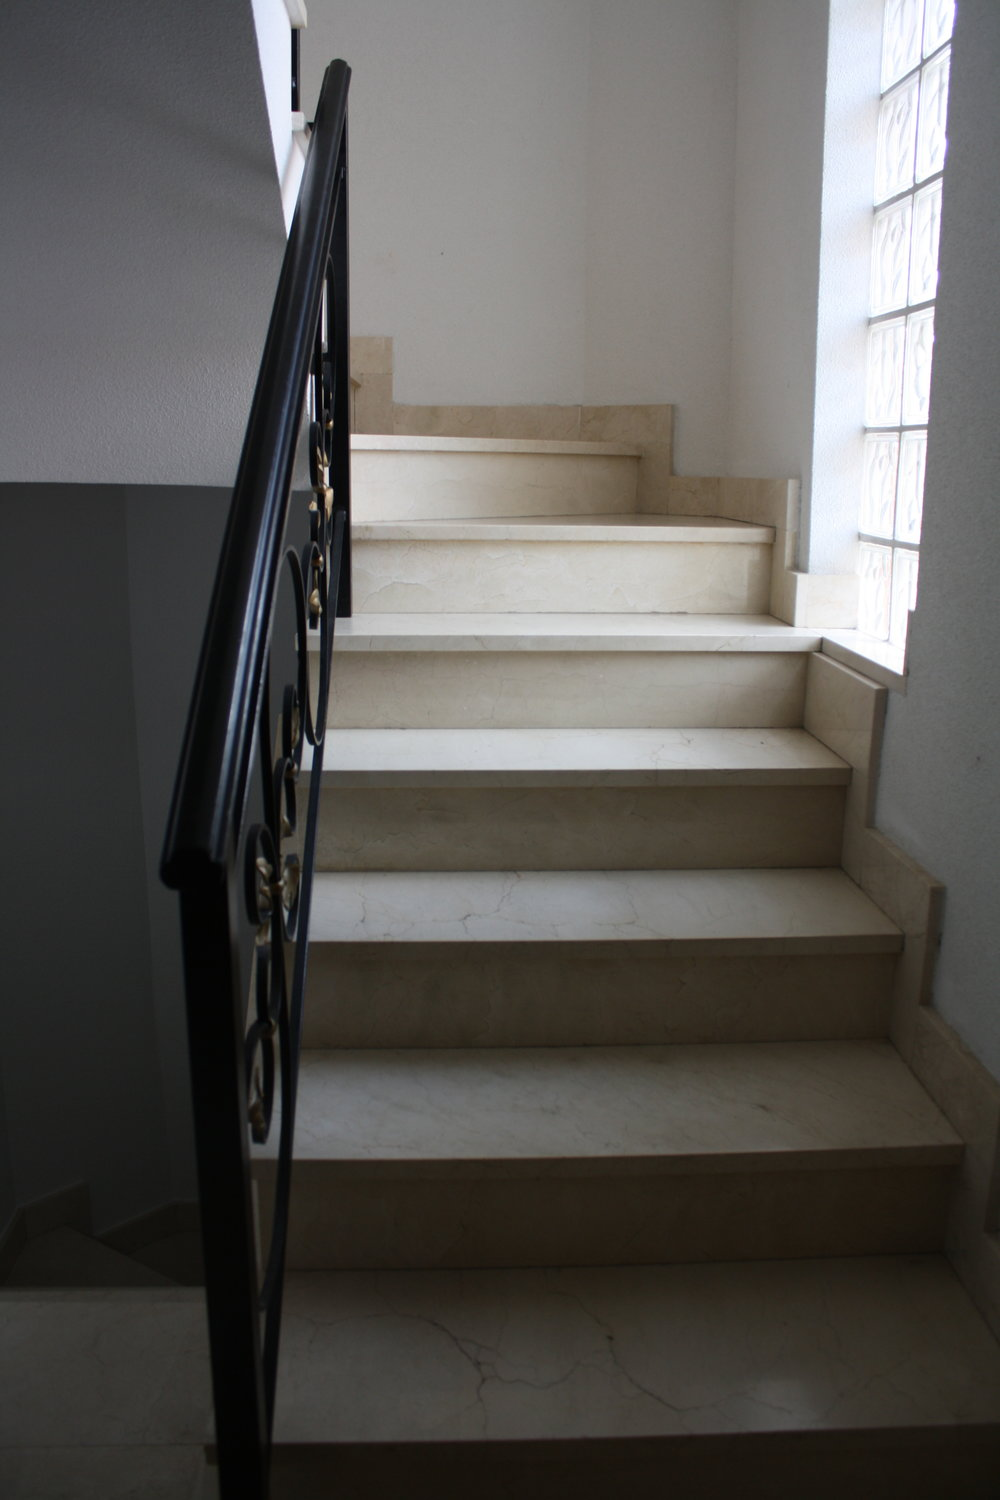 I'd show you a picture of my room but it's décor and vibe and not entirely my aesthetic… so, instead, here are the stairs I ascend to get there.